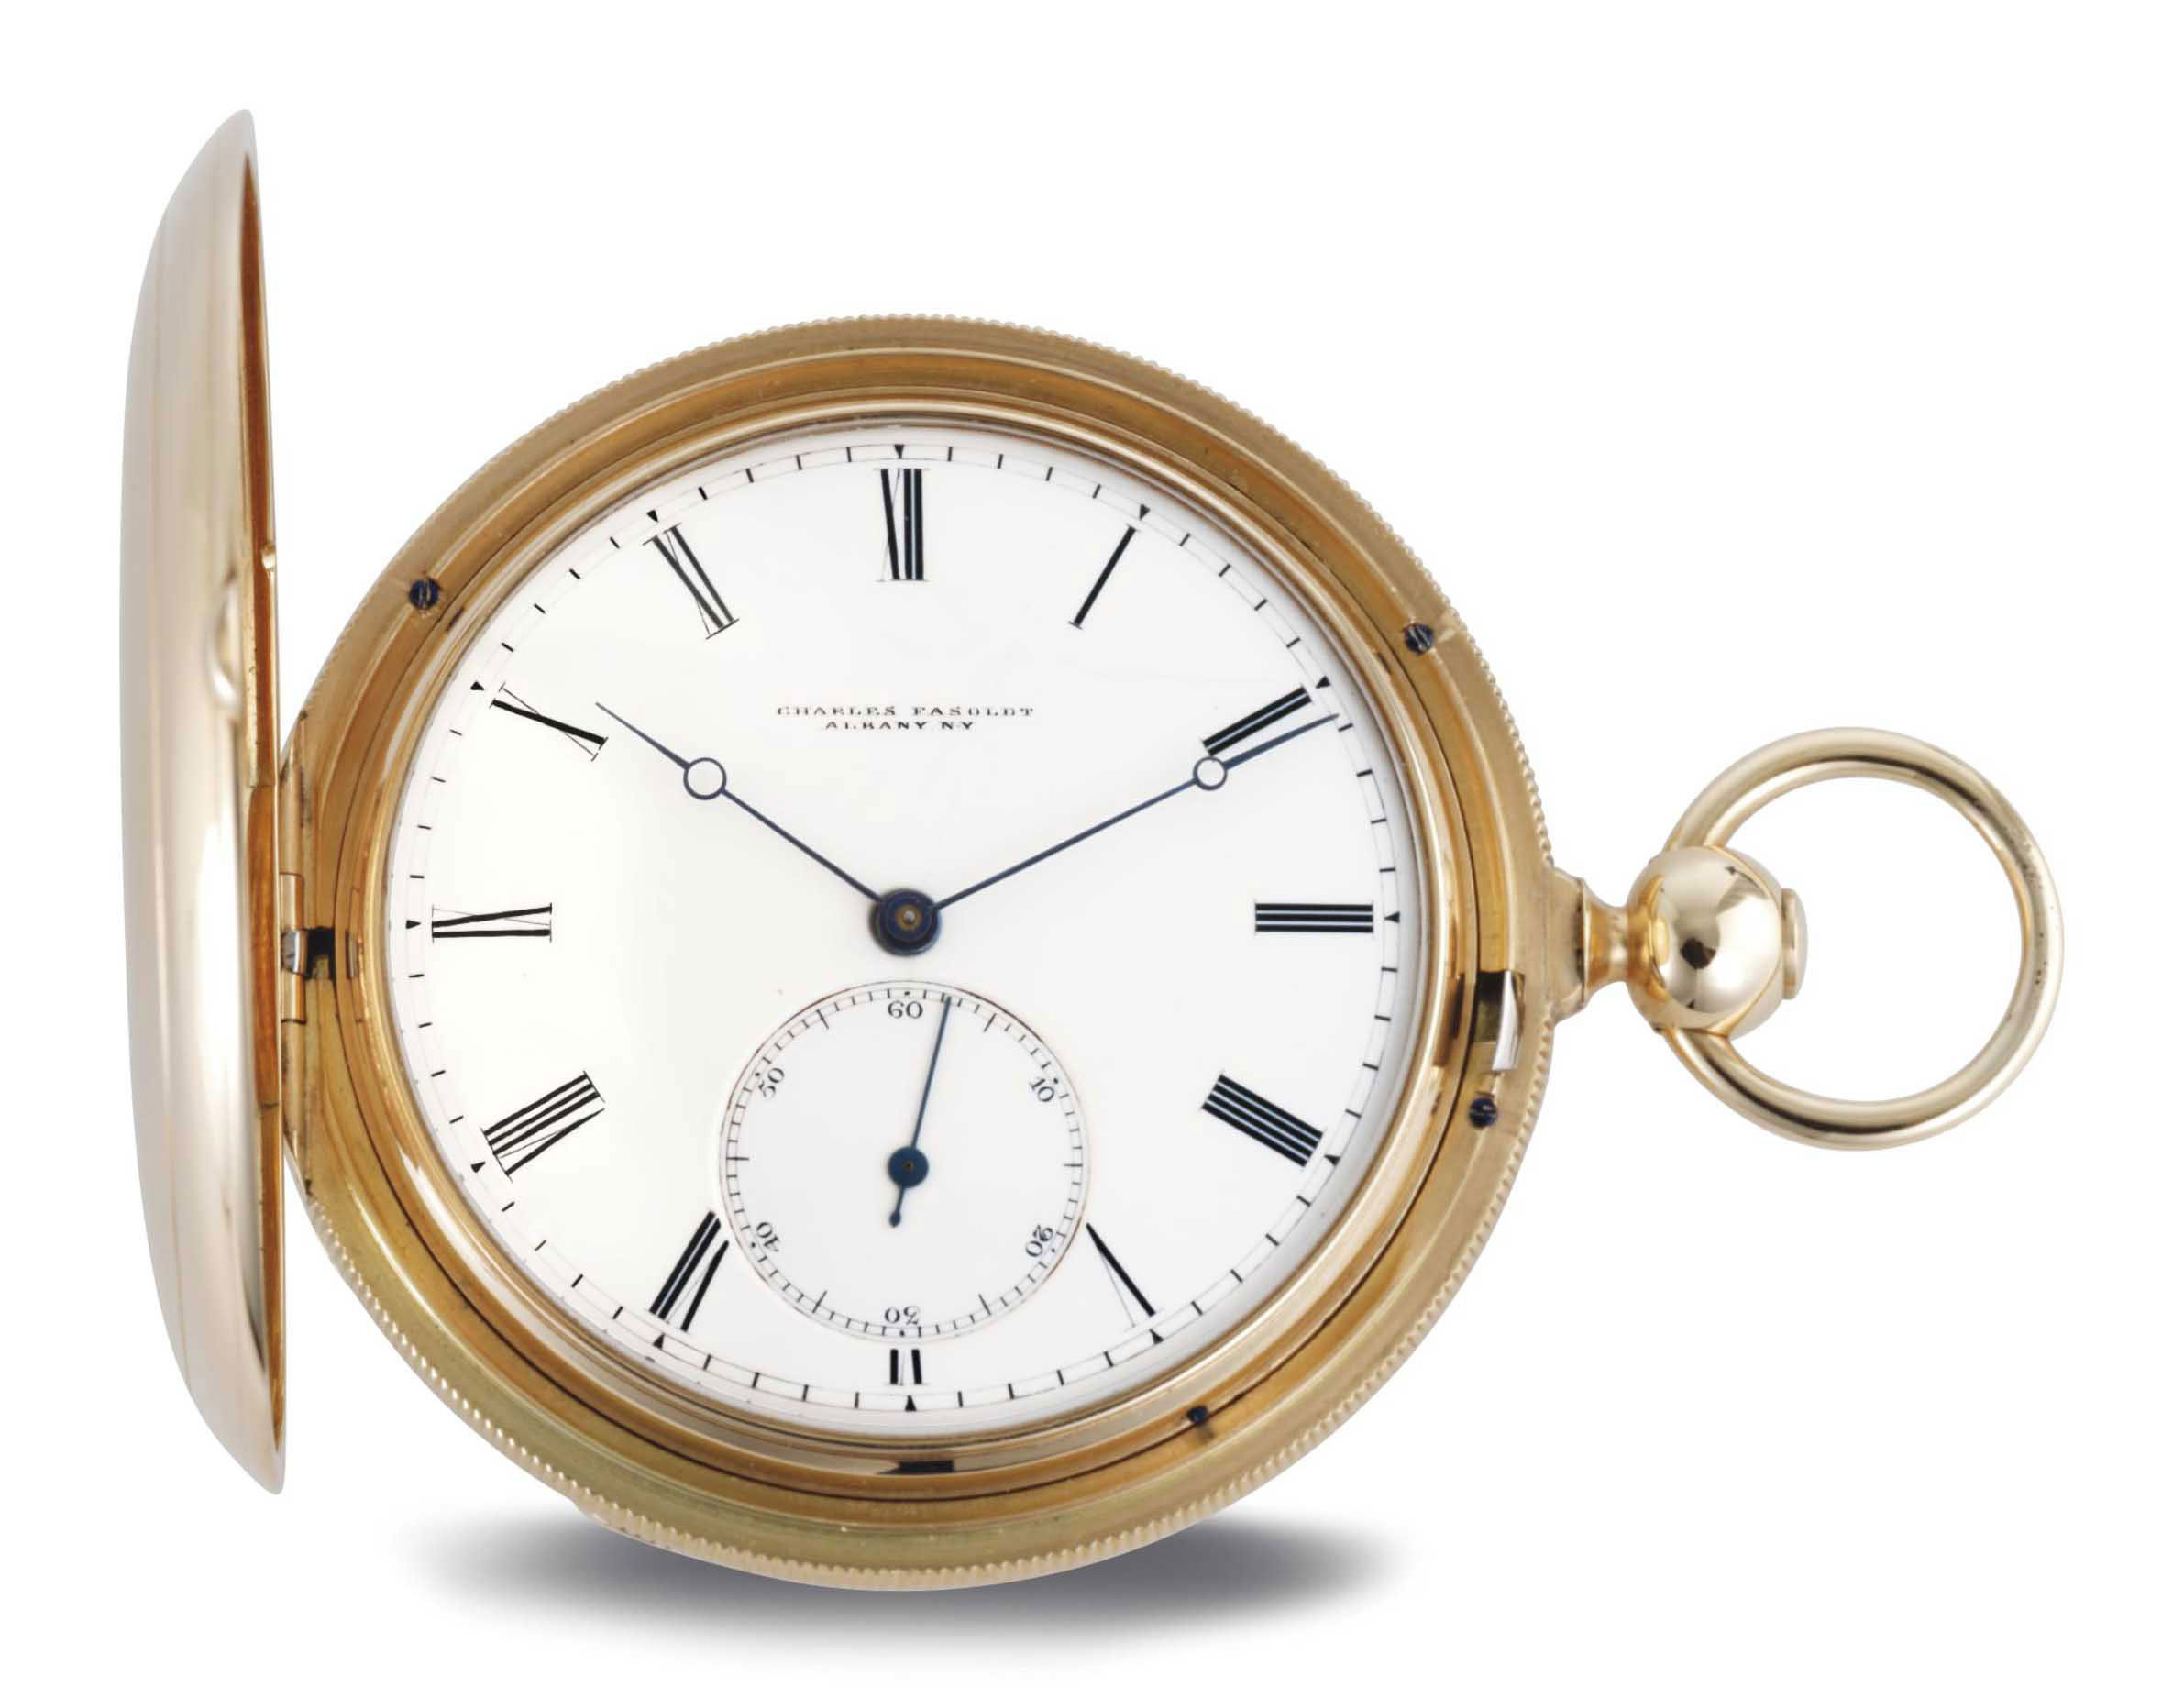 CHARLES FASOLDT. A FINE AND RARE 18K GOLD CABRIOLET KEYWOUND ISOCHRONAL POCKET CHRONOMETER